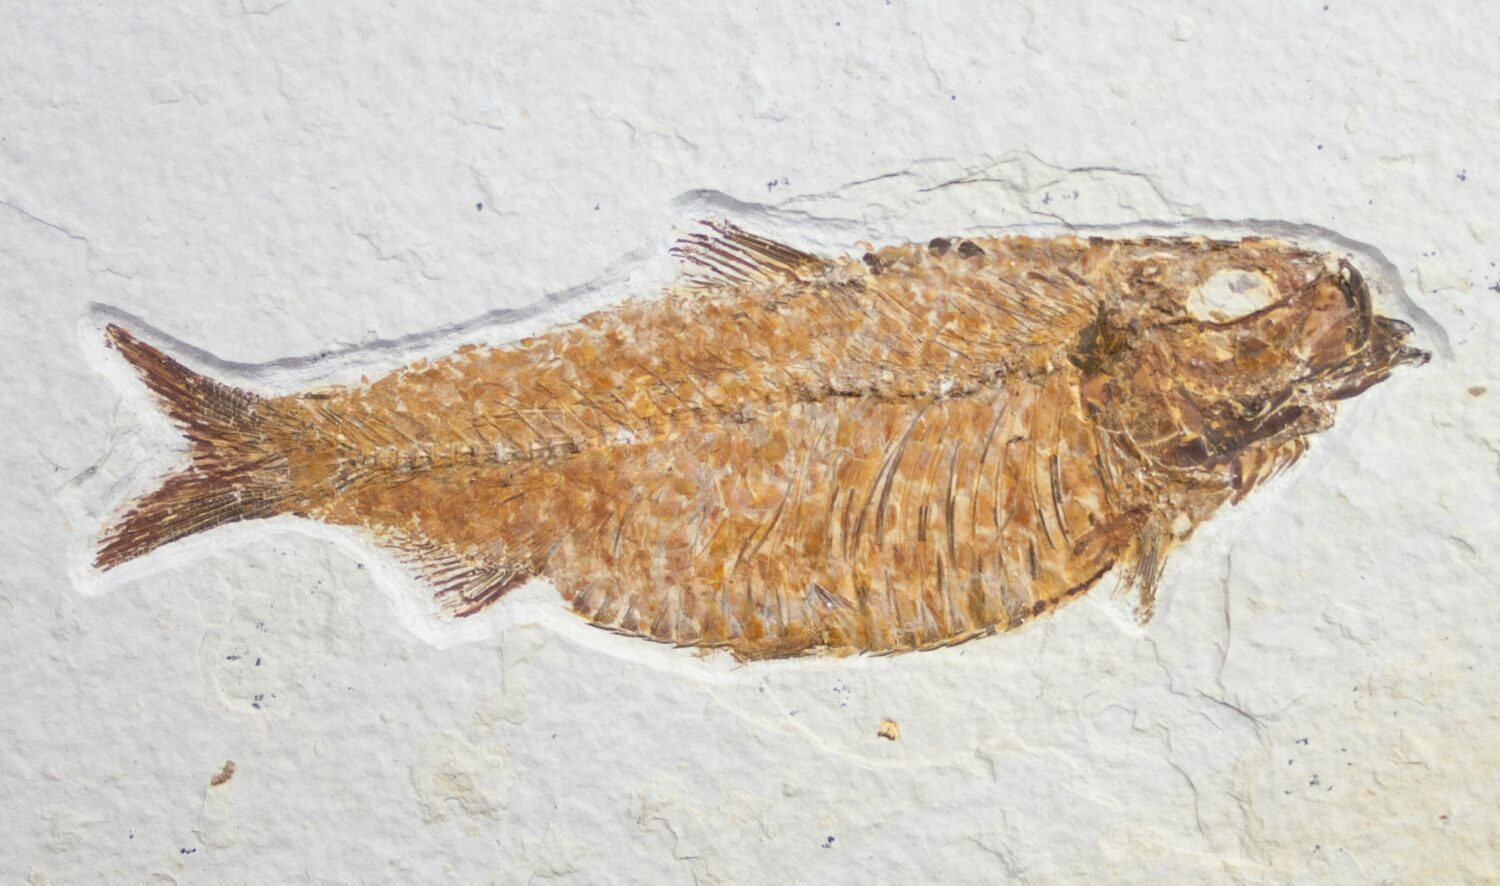 Fat knightia alta fish fossil wyoming for sale 8777 for Fish fossils for sale